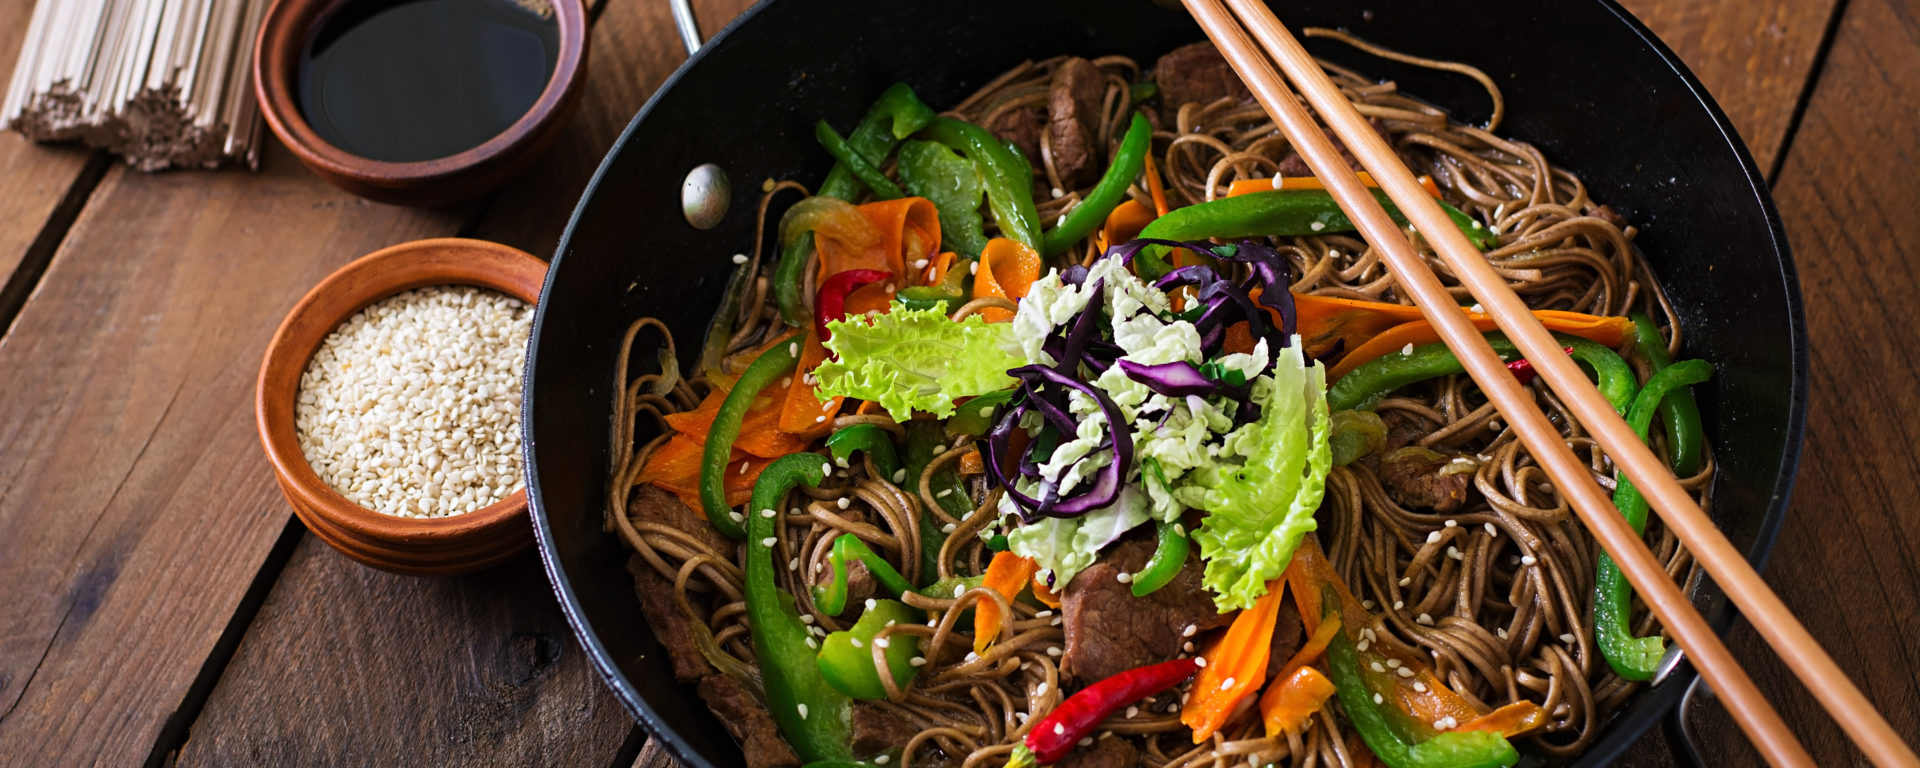 Chicken and vegetable buckwheat noodles glycoleap smart coach for diabetes forumfinder Image collections